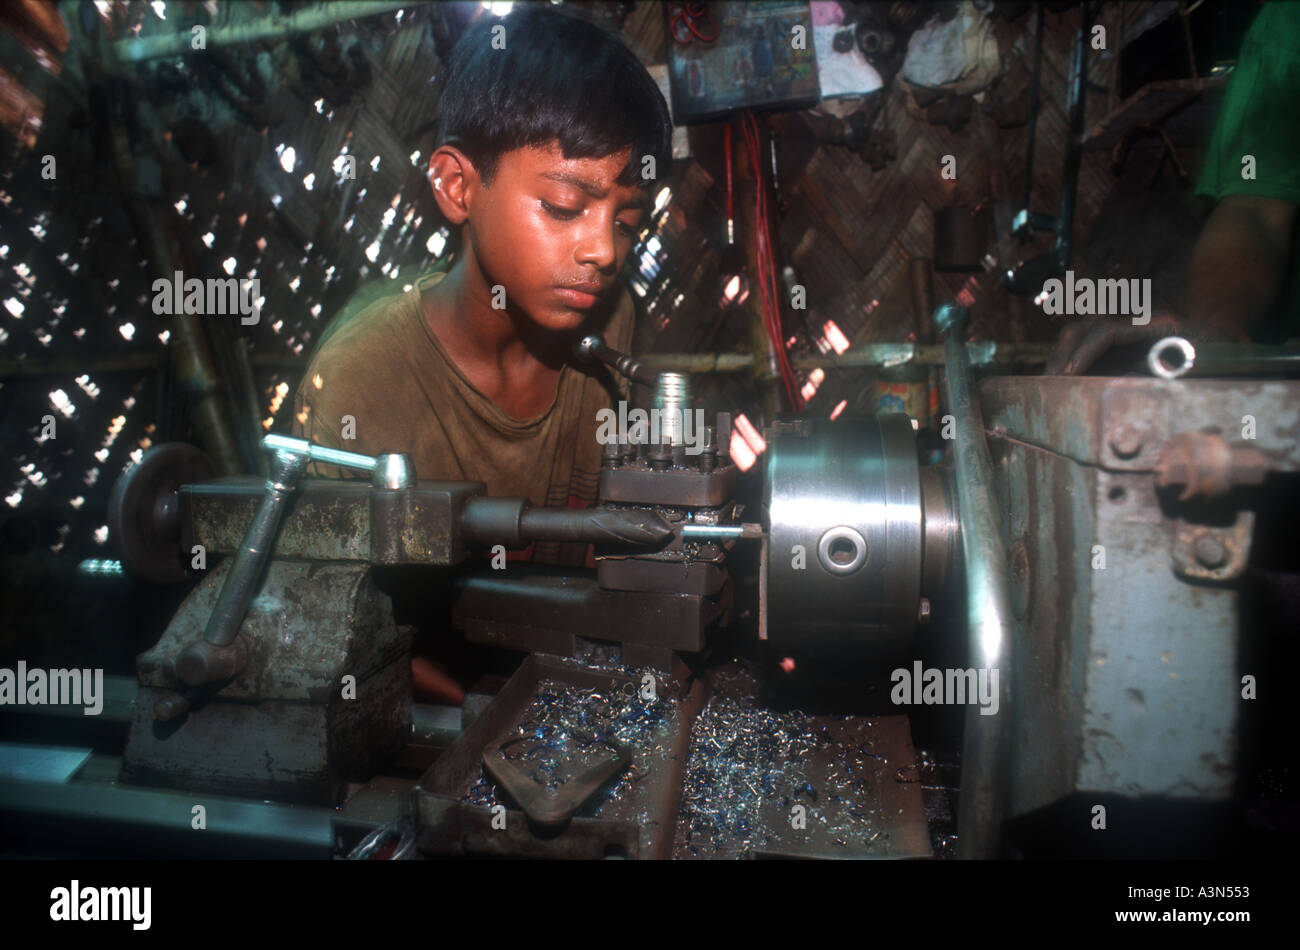 Children work in factories in Dhaka, Banghladesh. They are often run and trafficked by criminal syndicates. - Stock Image